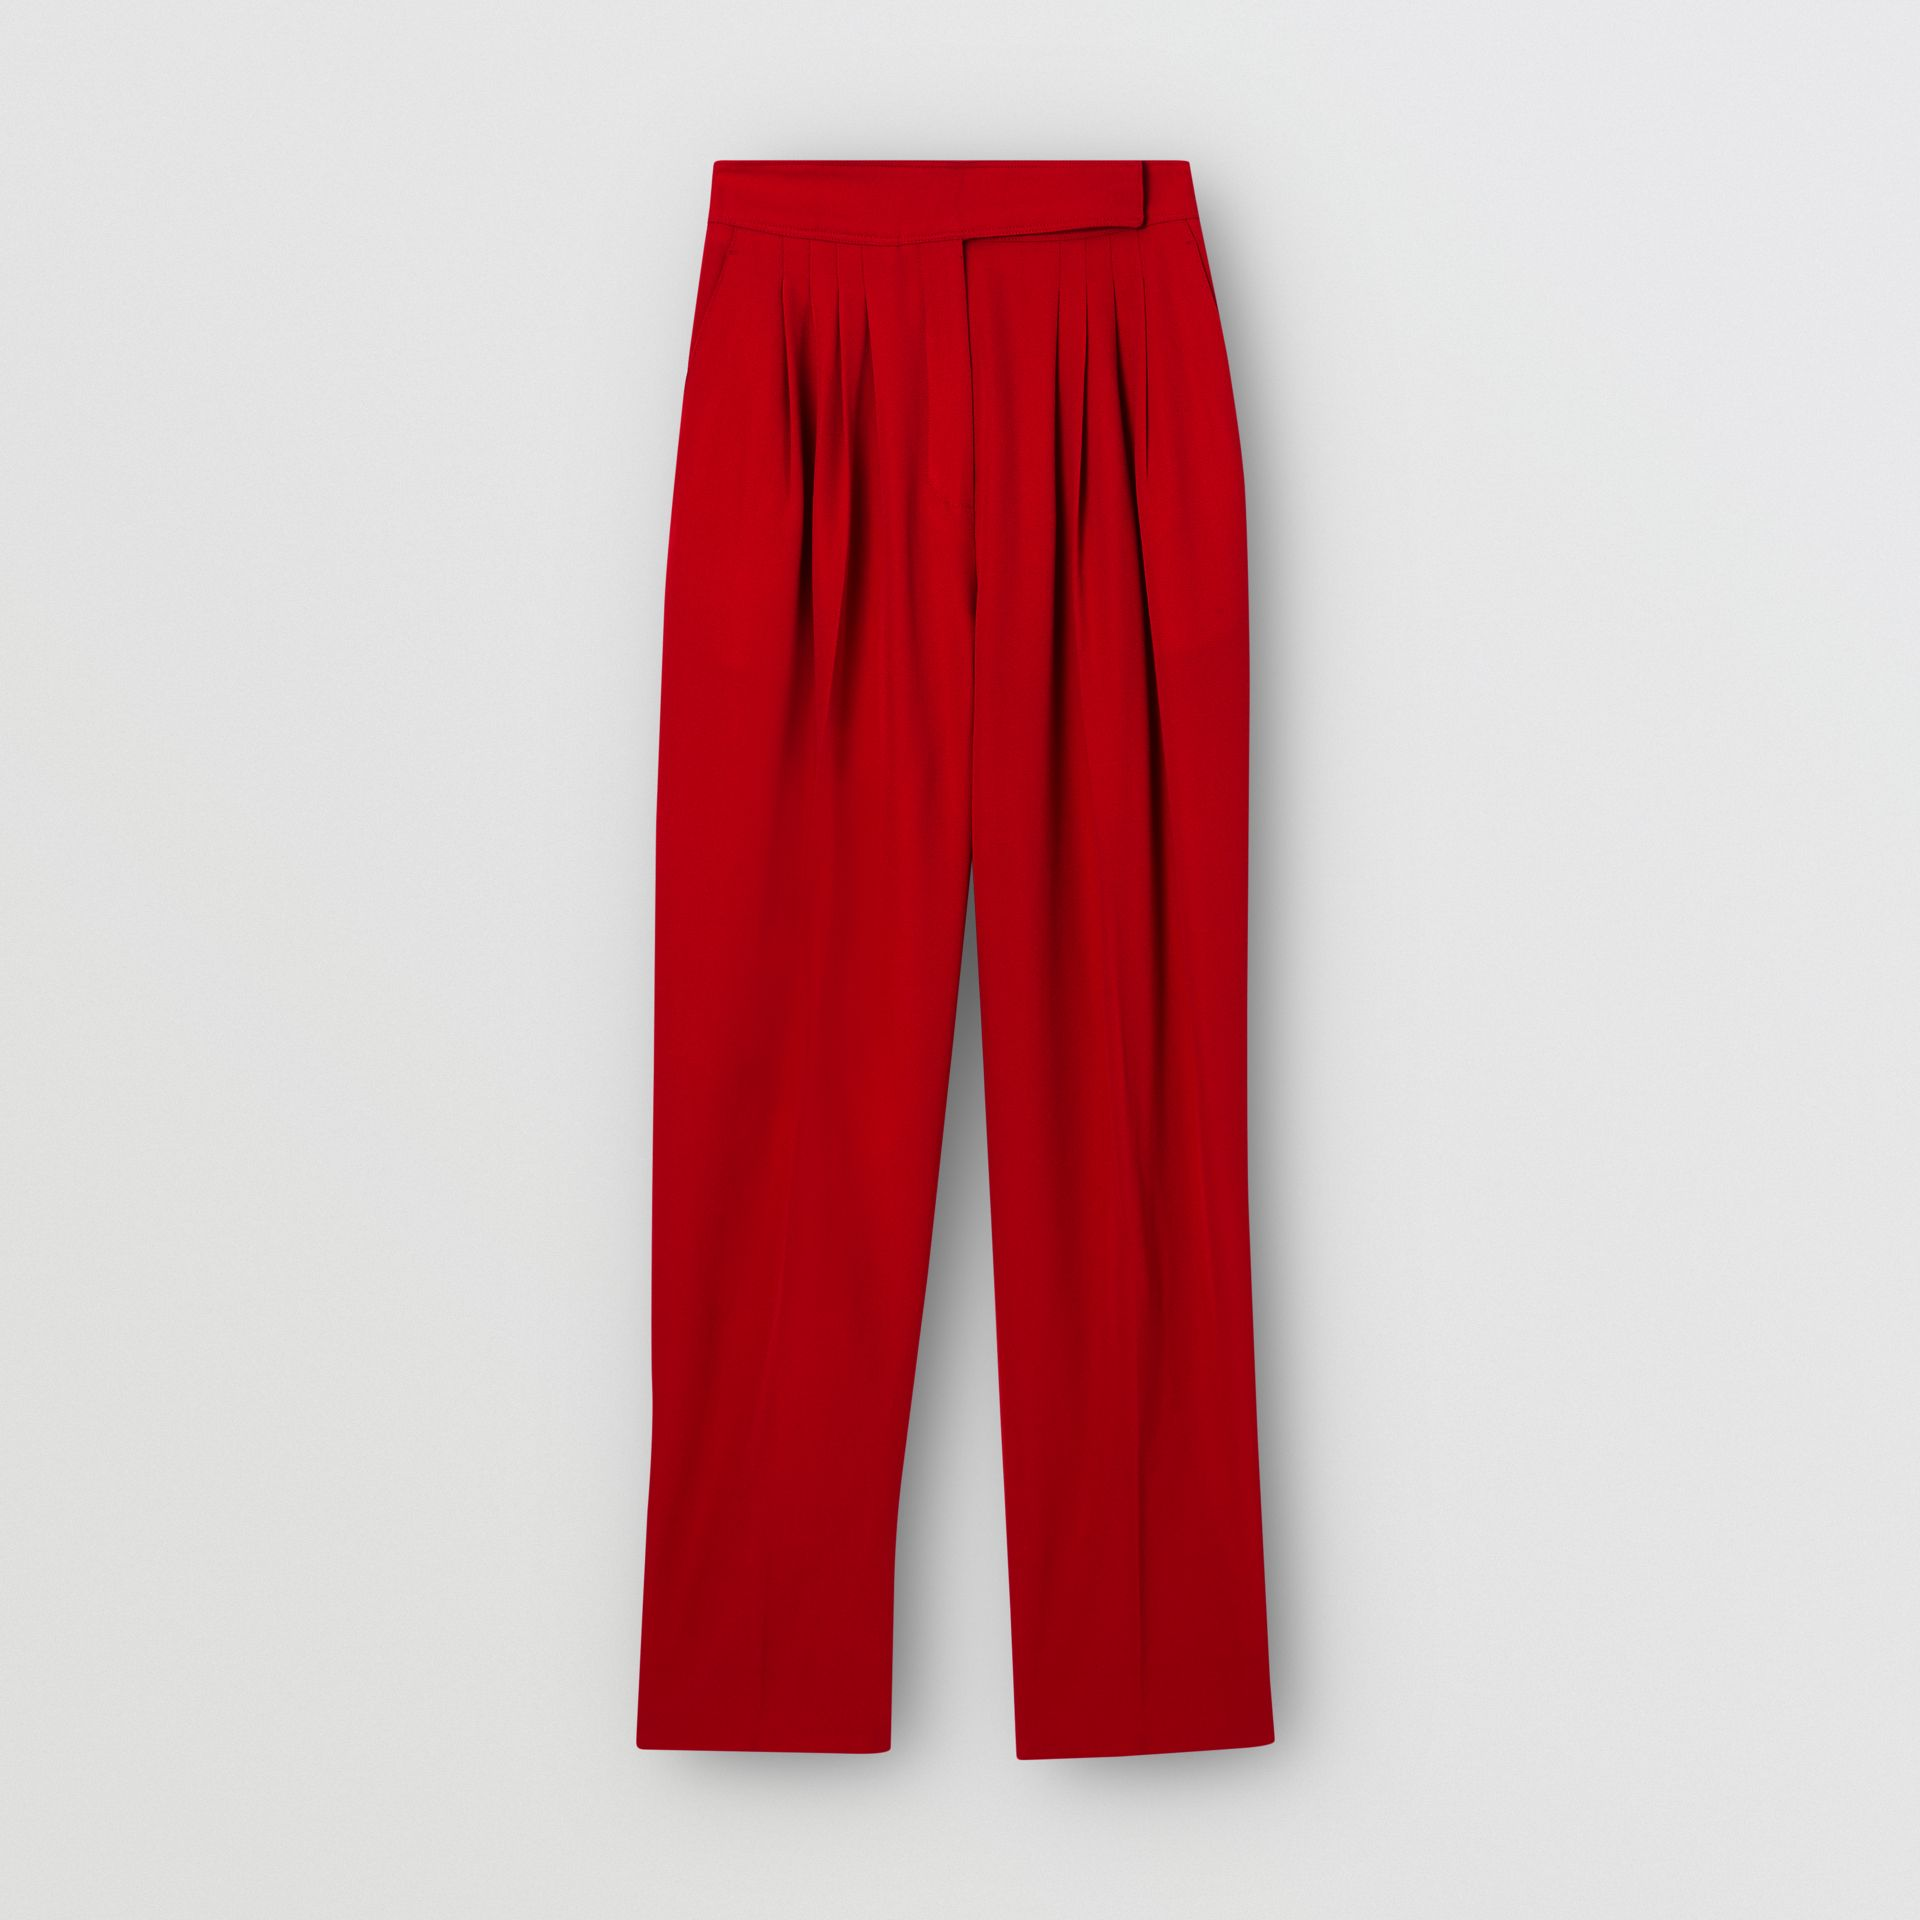 Pleat Detail Wool Tailored Trousers in Bright Red - Women | Burberry Australia - gallery image 3